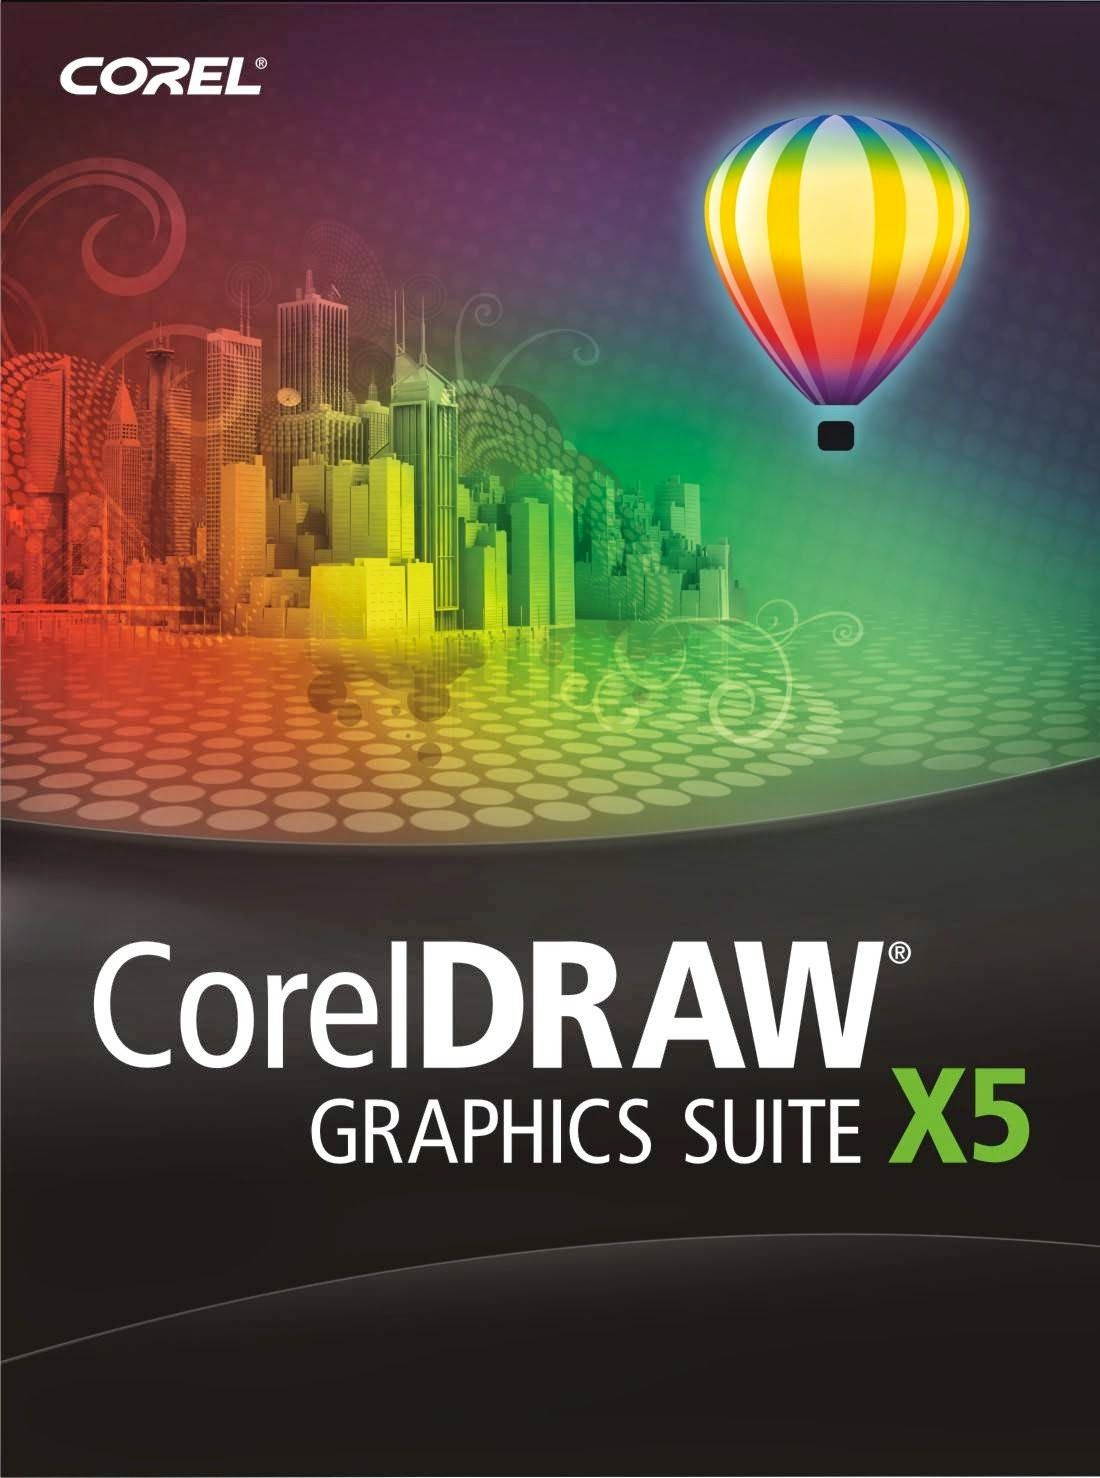 hackinggprsforallnetwork: CorelDRAW Graphics Suite X5 Keygen